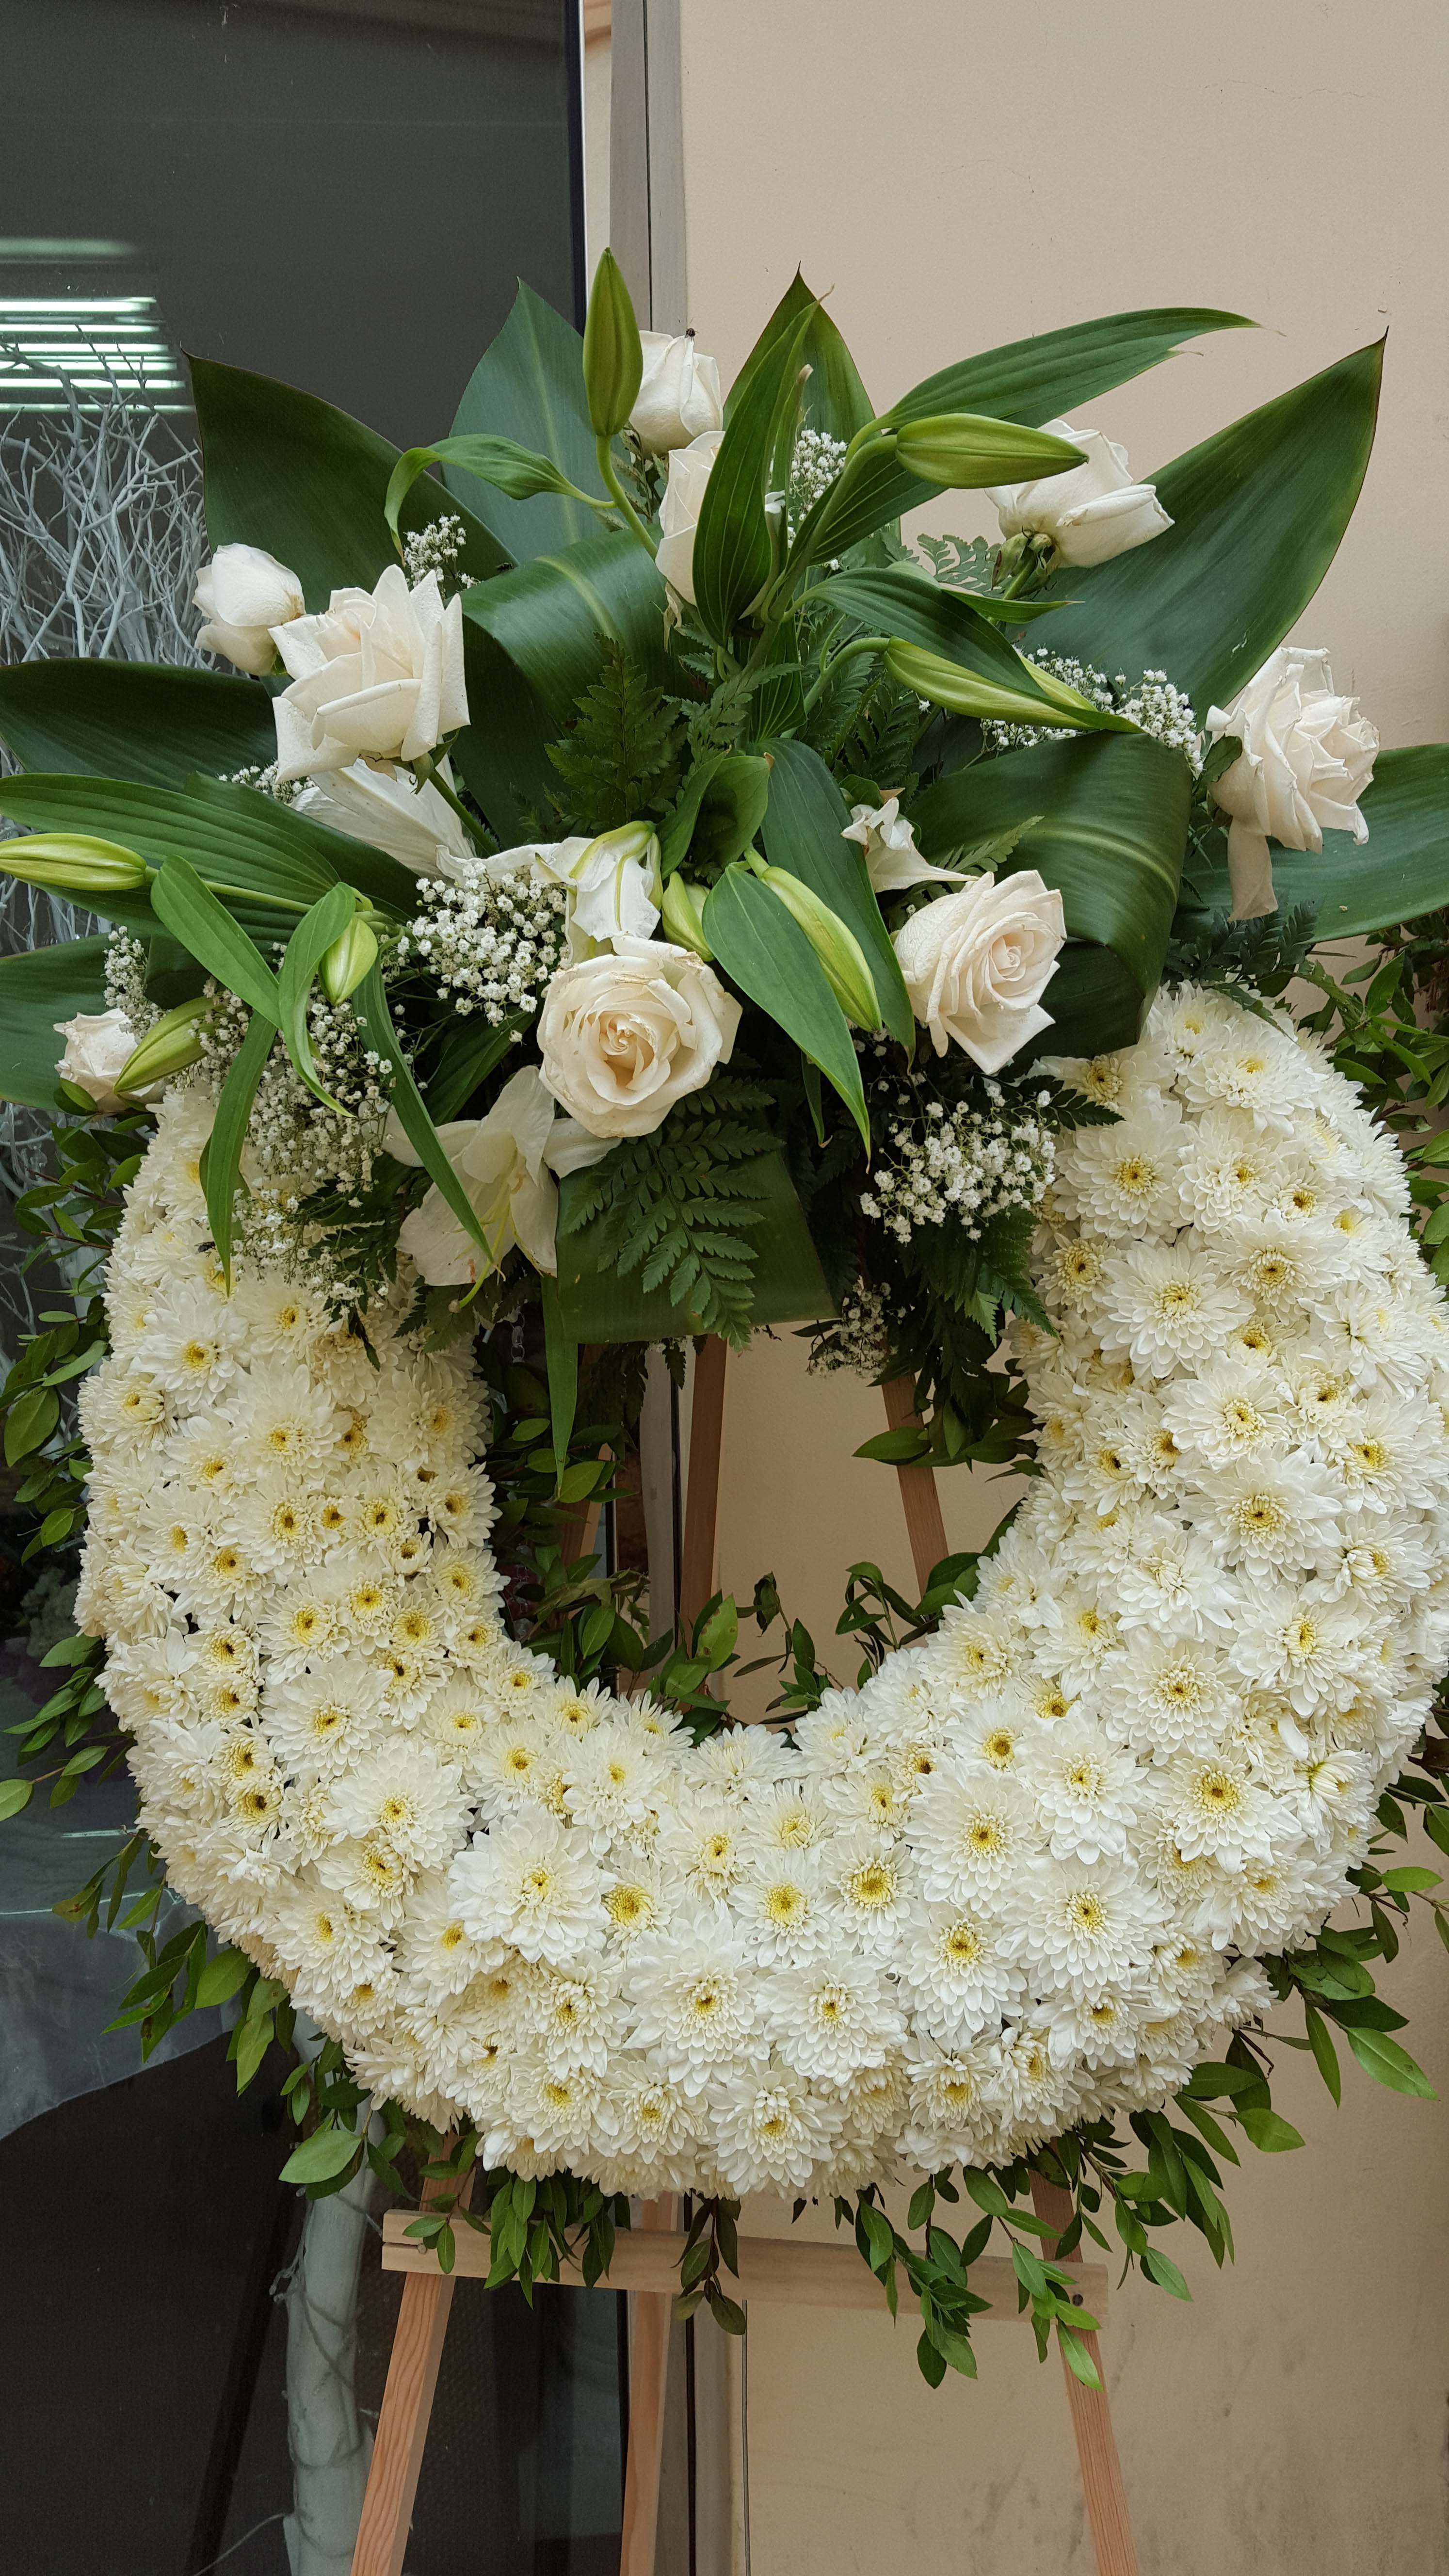 Cfm gives tips to buy cheap funeral flowers in las flower district a circular funeral wreath is a symbol of eternity white flowers izmirmasajfo